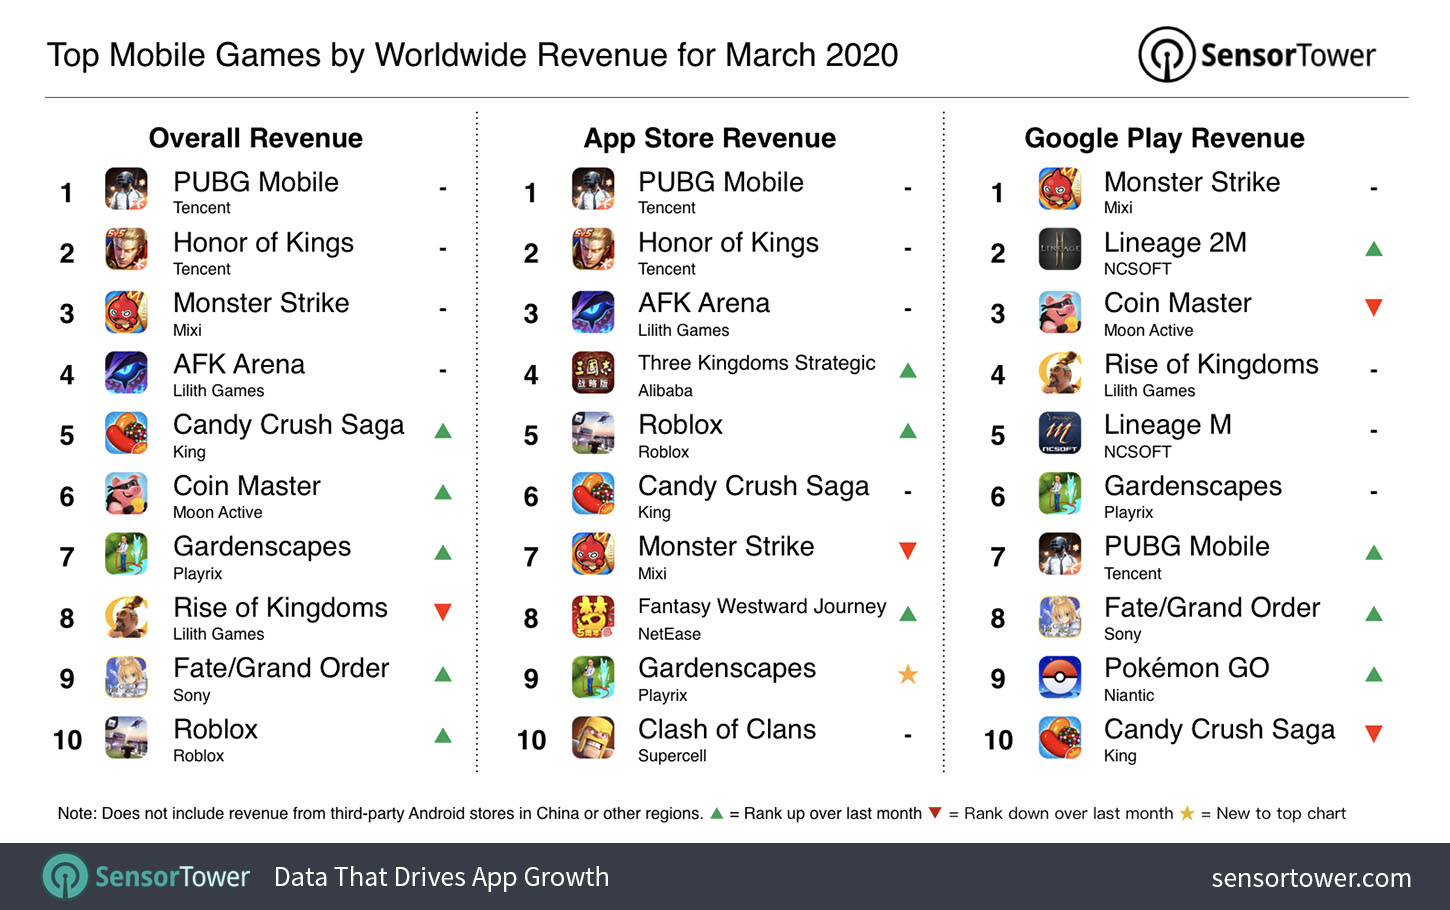 """Top Grossing Mobile Games Worldwide for March 2020"